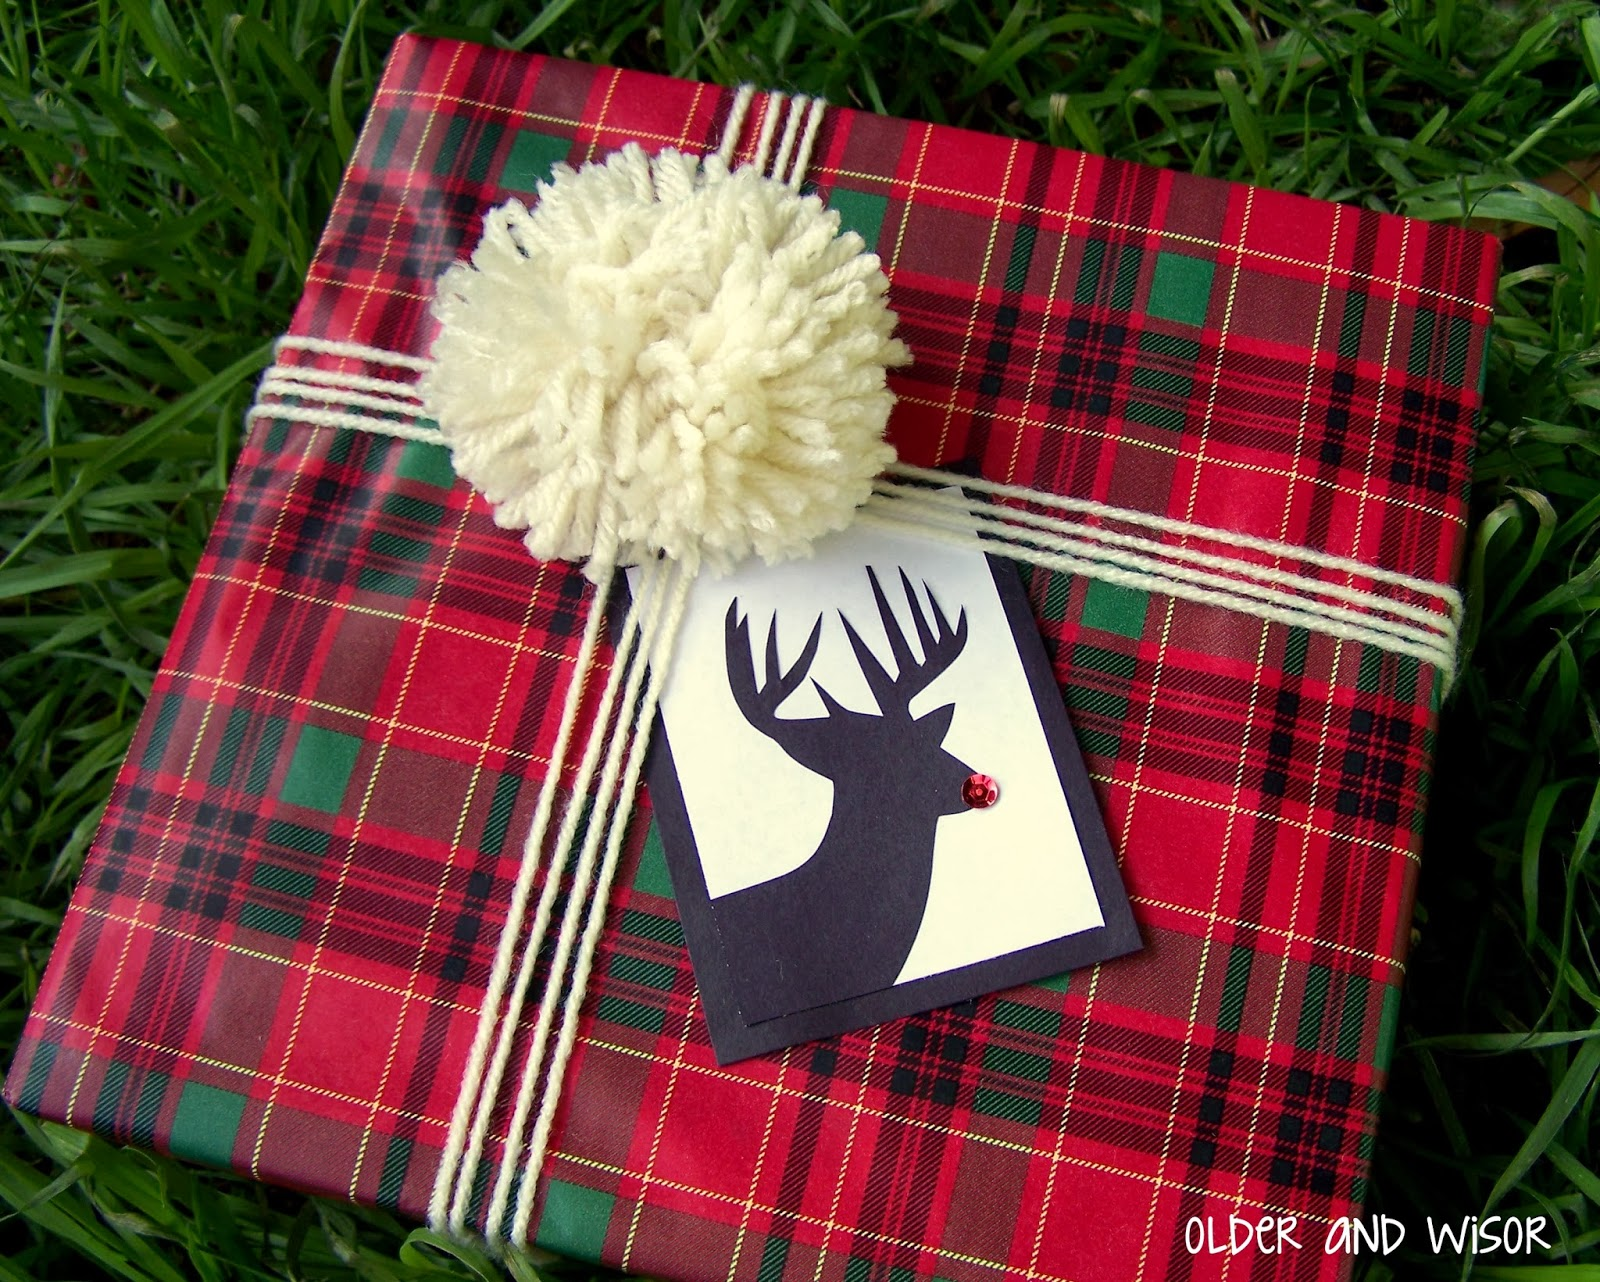 Older and wisor creative christmas gift wrapping ideas 5 for Creative christmas ideas